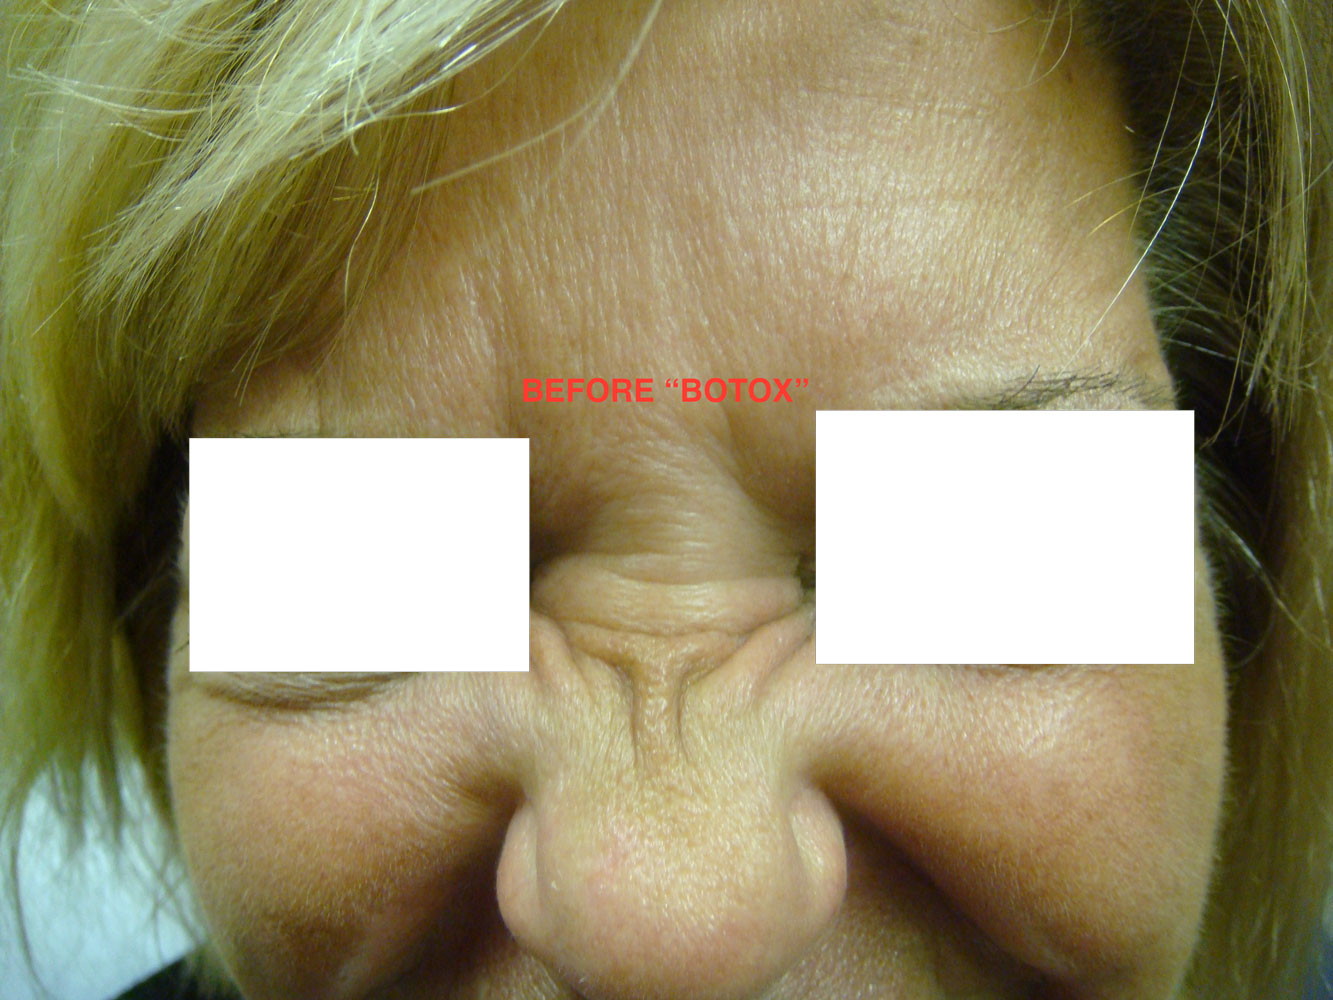 Woman's nose before from Botox treatment before and after procedure provided by Dr. Scott Hernberg of Tomorrow's Wellness Center, NJ's premier med spa.